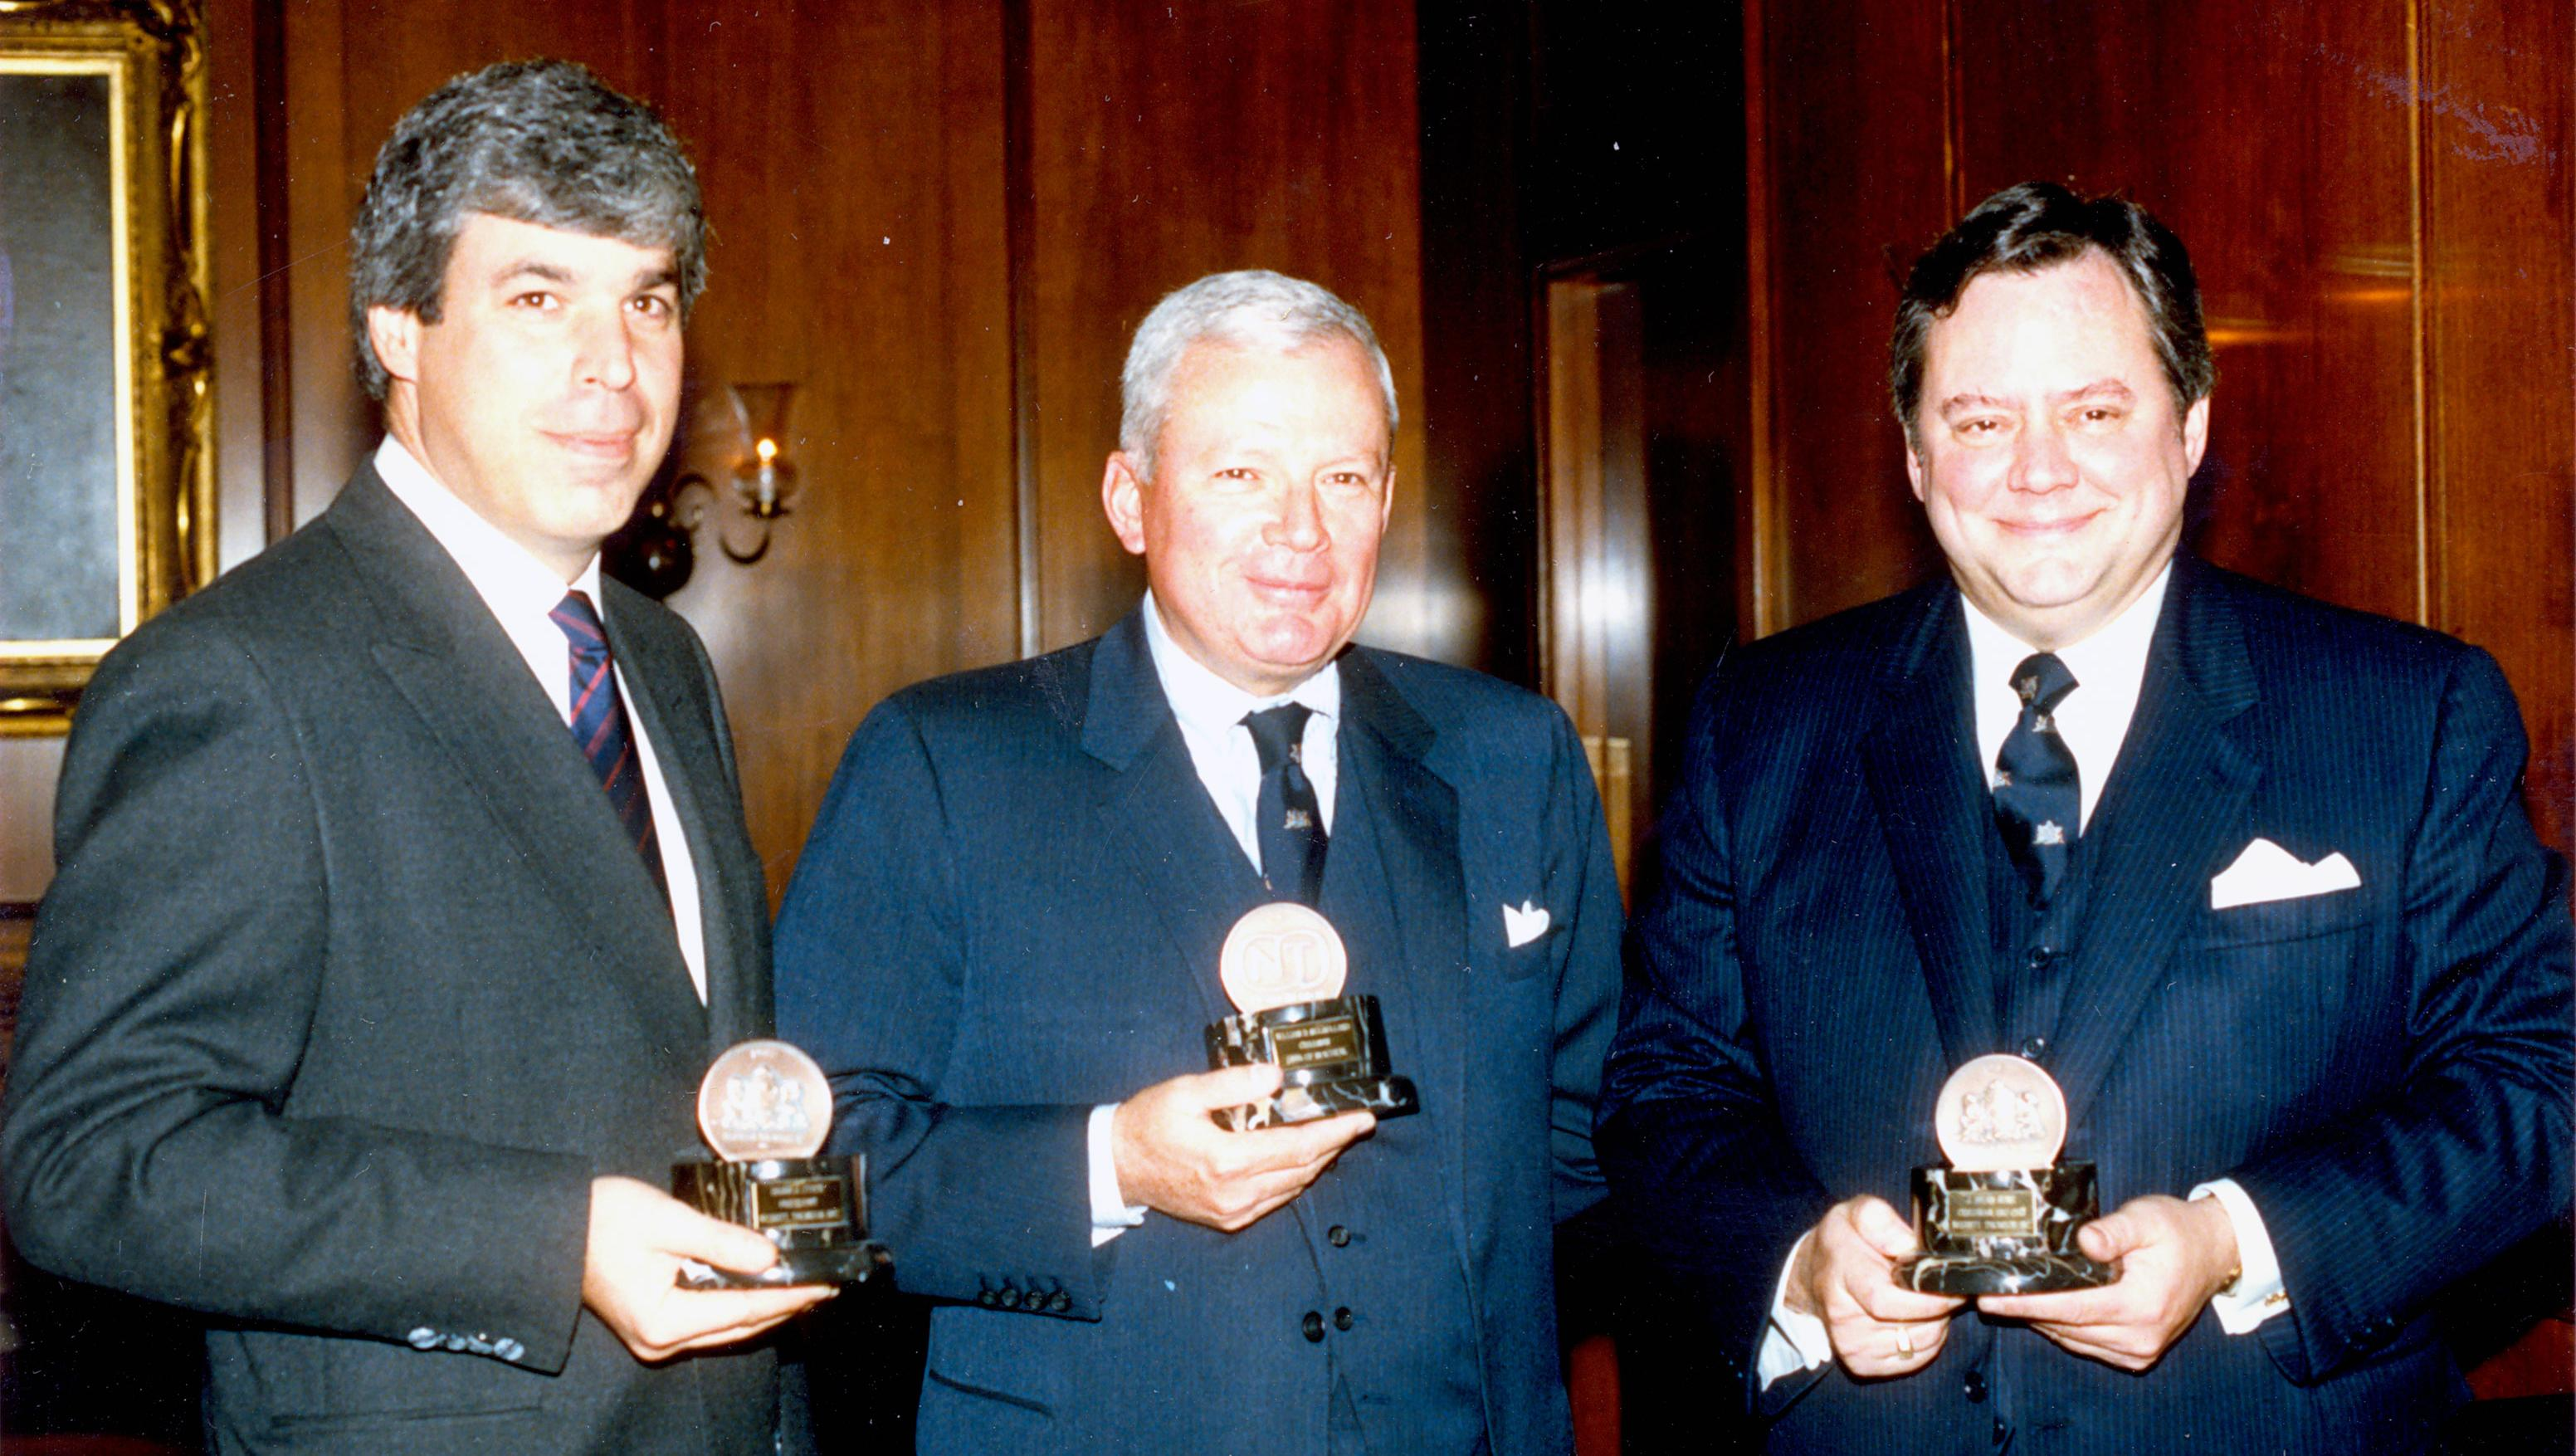 Brian Steck, President of Nebitt Thomson,  W.D. Mulholland, Chairman and CEO, Bank of Montreal, and J. Brian Aune, Chairman, Nesbitt Thomson, in October 1987 for the BMO Nesbitt Thomson merger.